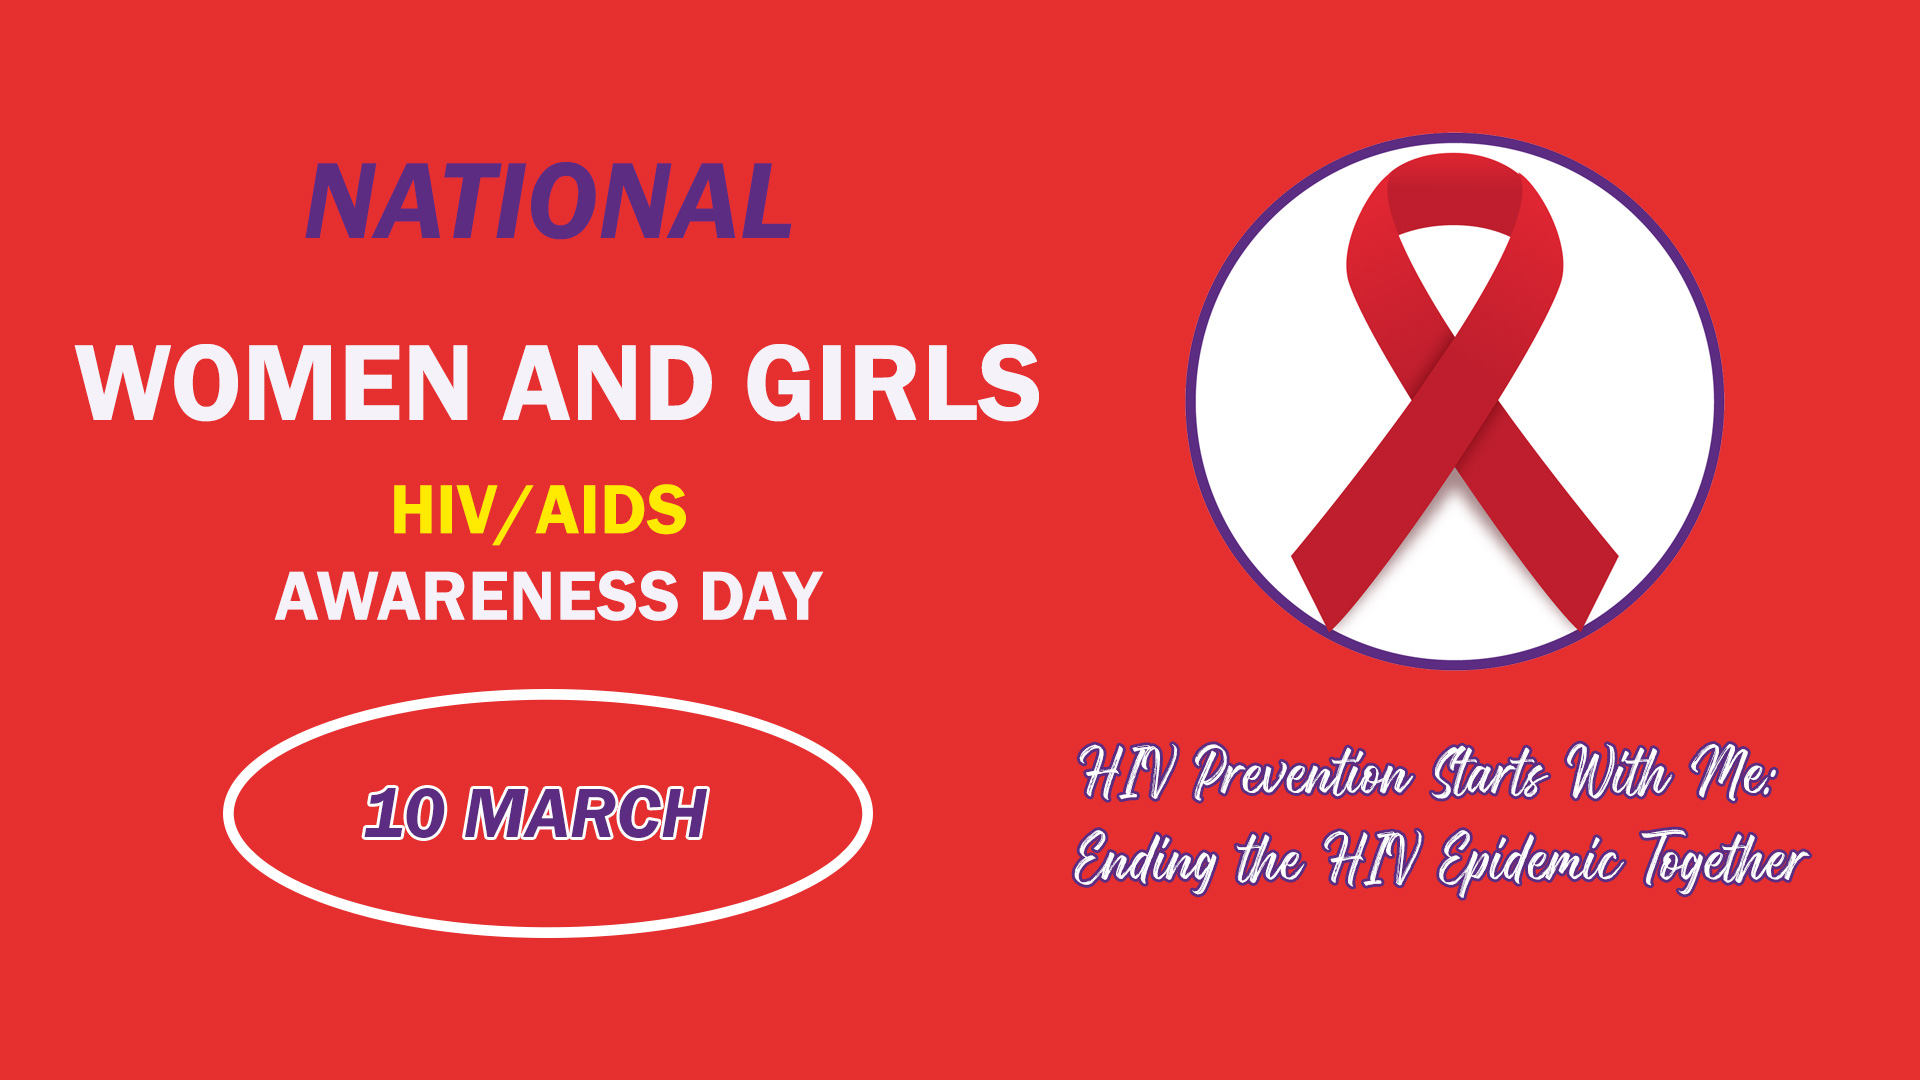 (10 March) National Women and Girl's HIV/AIDS Awareness Day 2020 : Theme, Quotes, Speech, Poster, Slogan, Logo, Significance, Messages, Symbol and Awareness Program